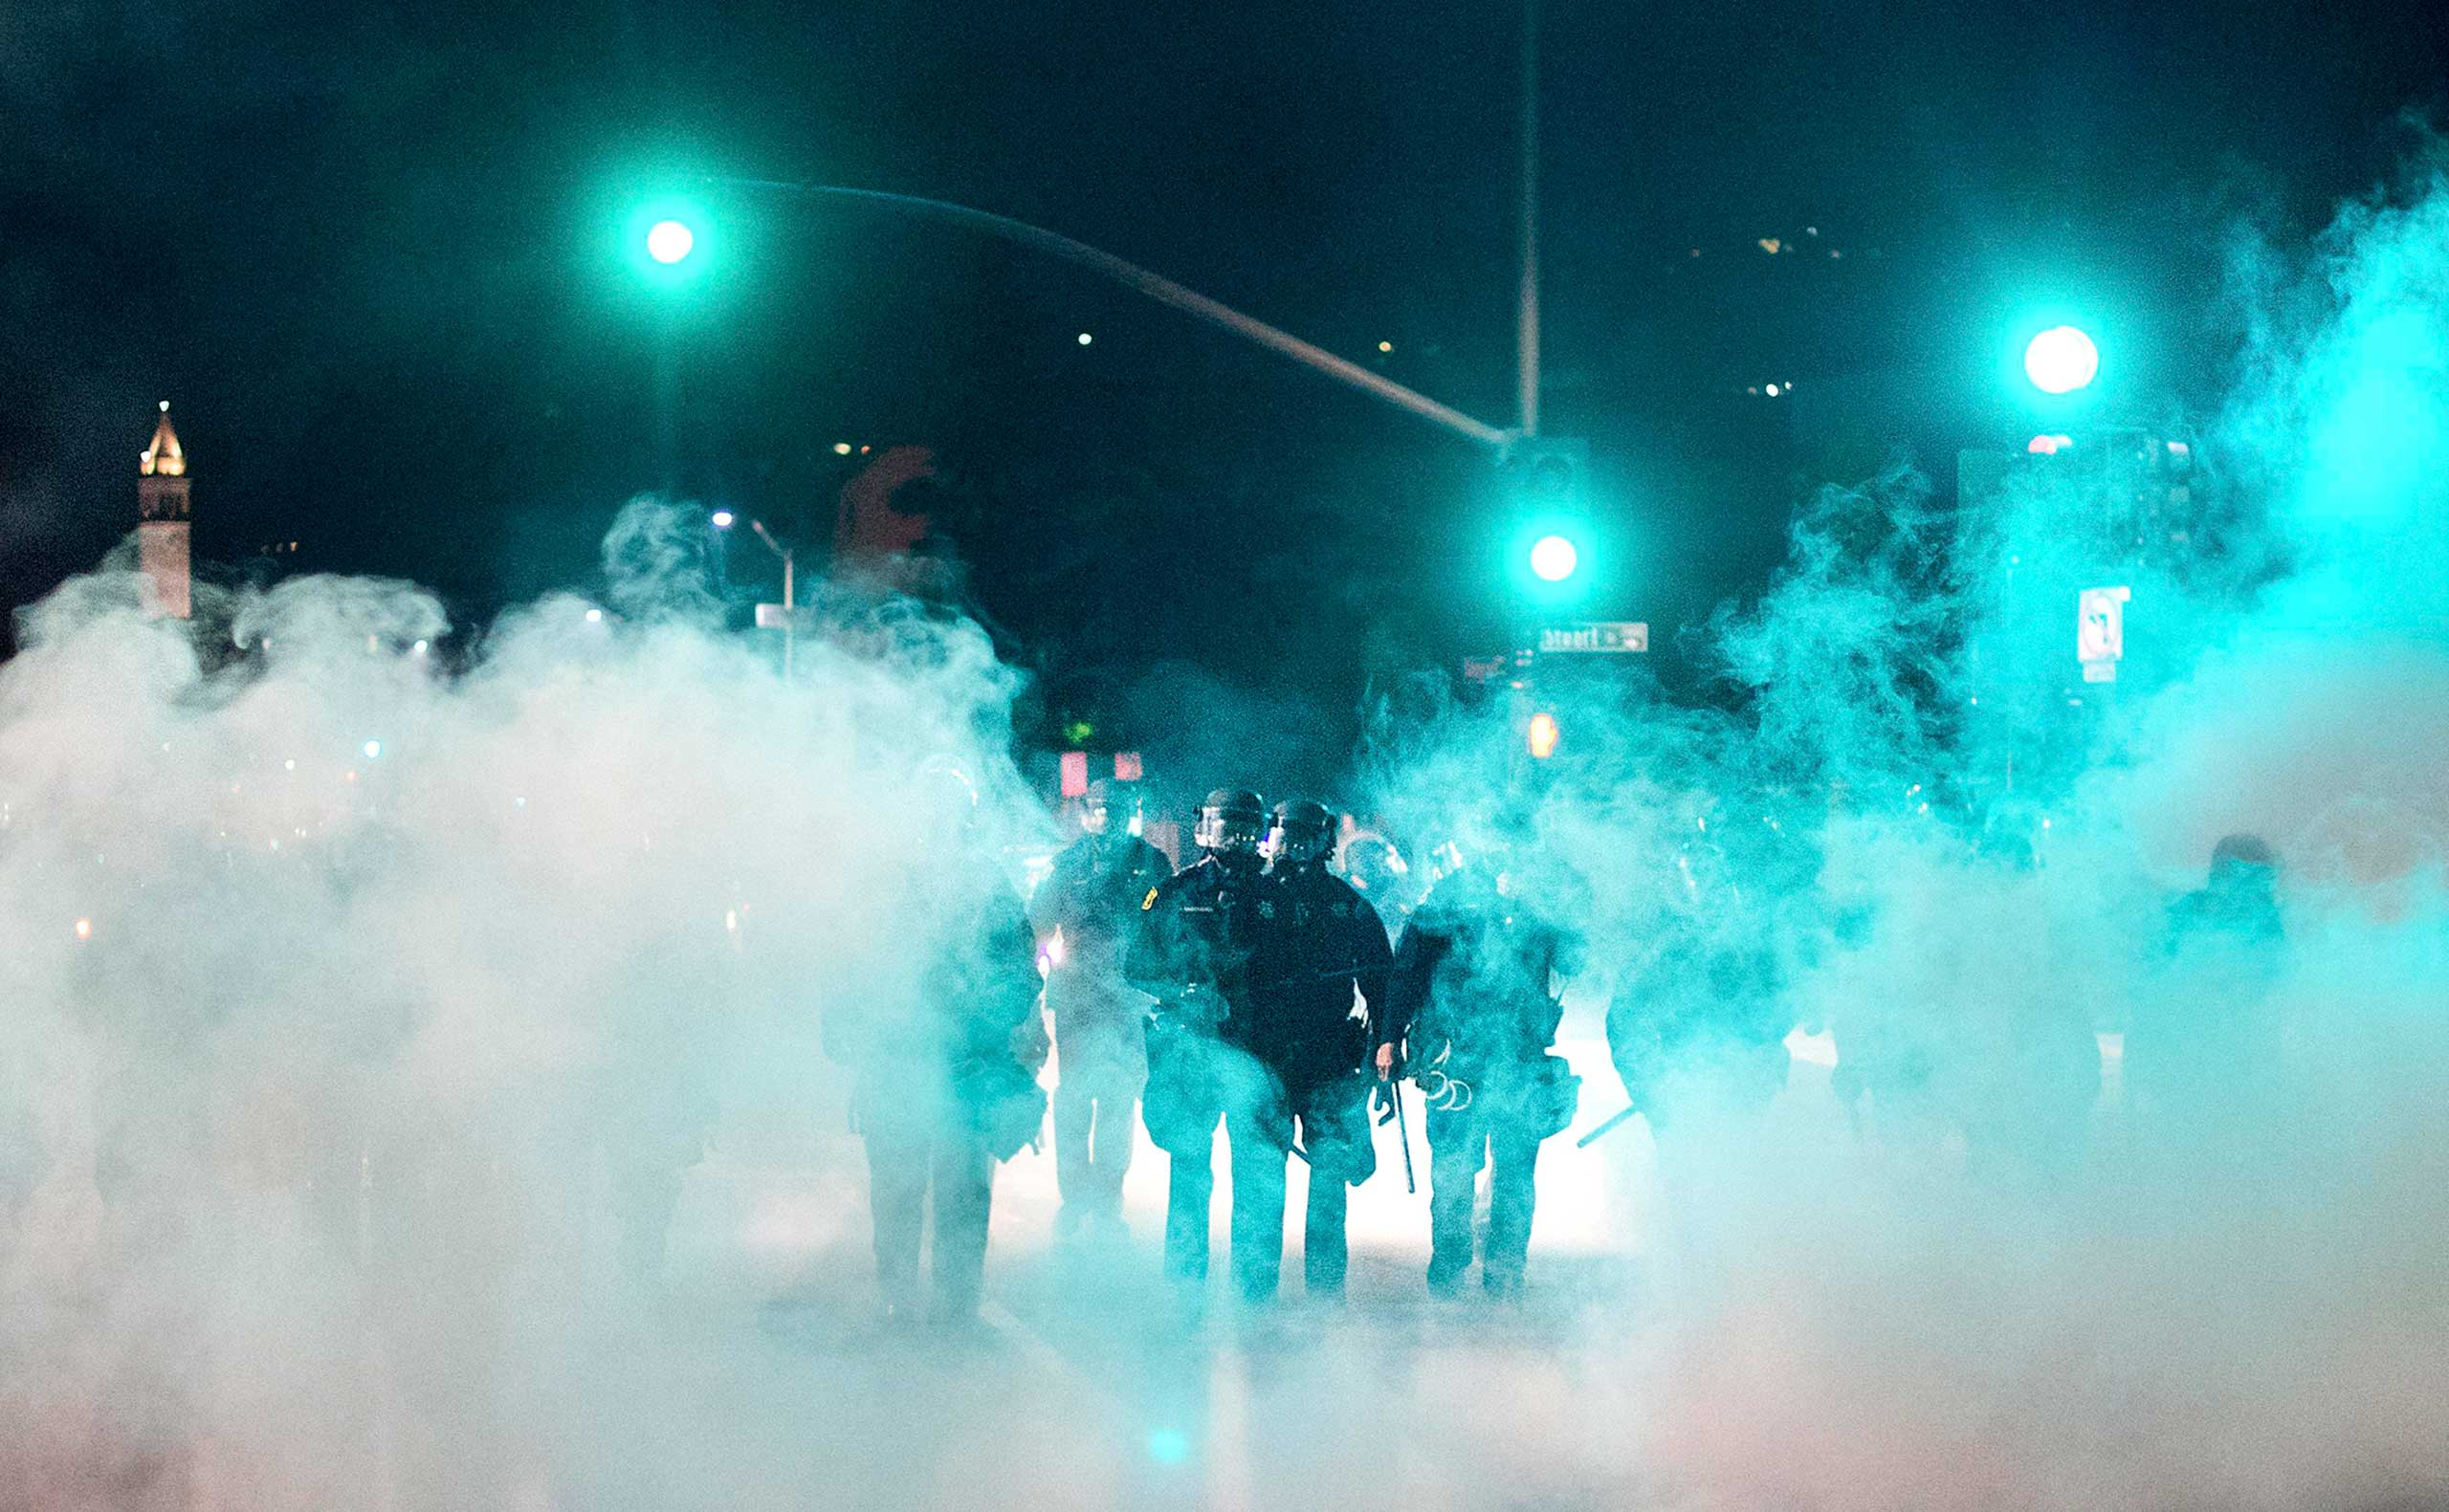 Police officers deploy teargas while trying to disperse a crowd comprised largely of student protesters during a protest against police violence in Berkeley, Calif. on Dec. 7, 2014.